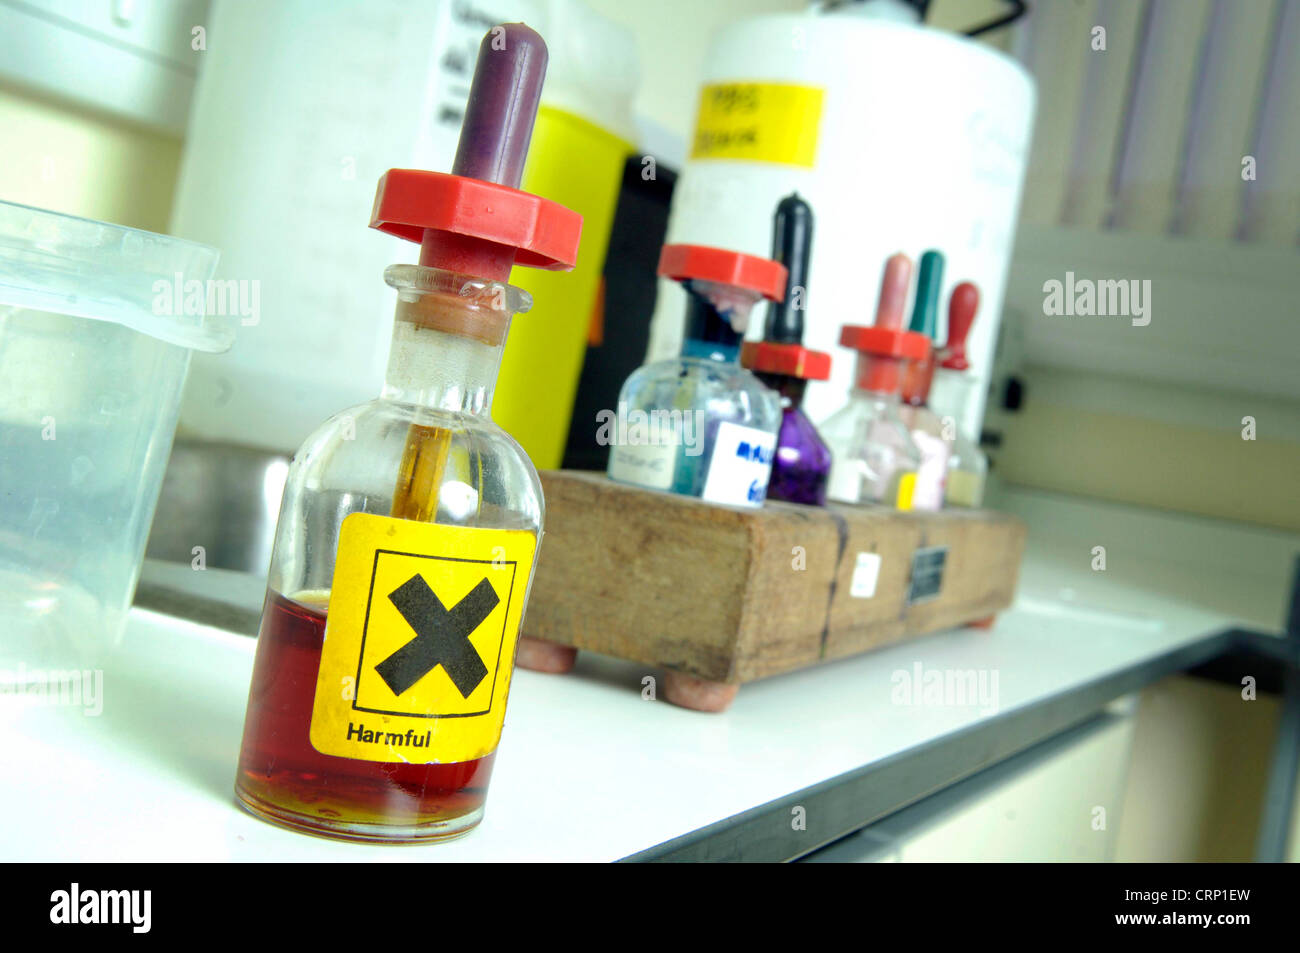 A pipette bottle containing yellow liquid marked 'Harmful' is placed in front a rack of bottles on a laboratory - Stock Image